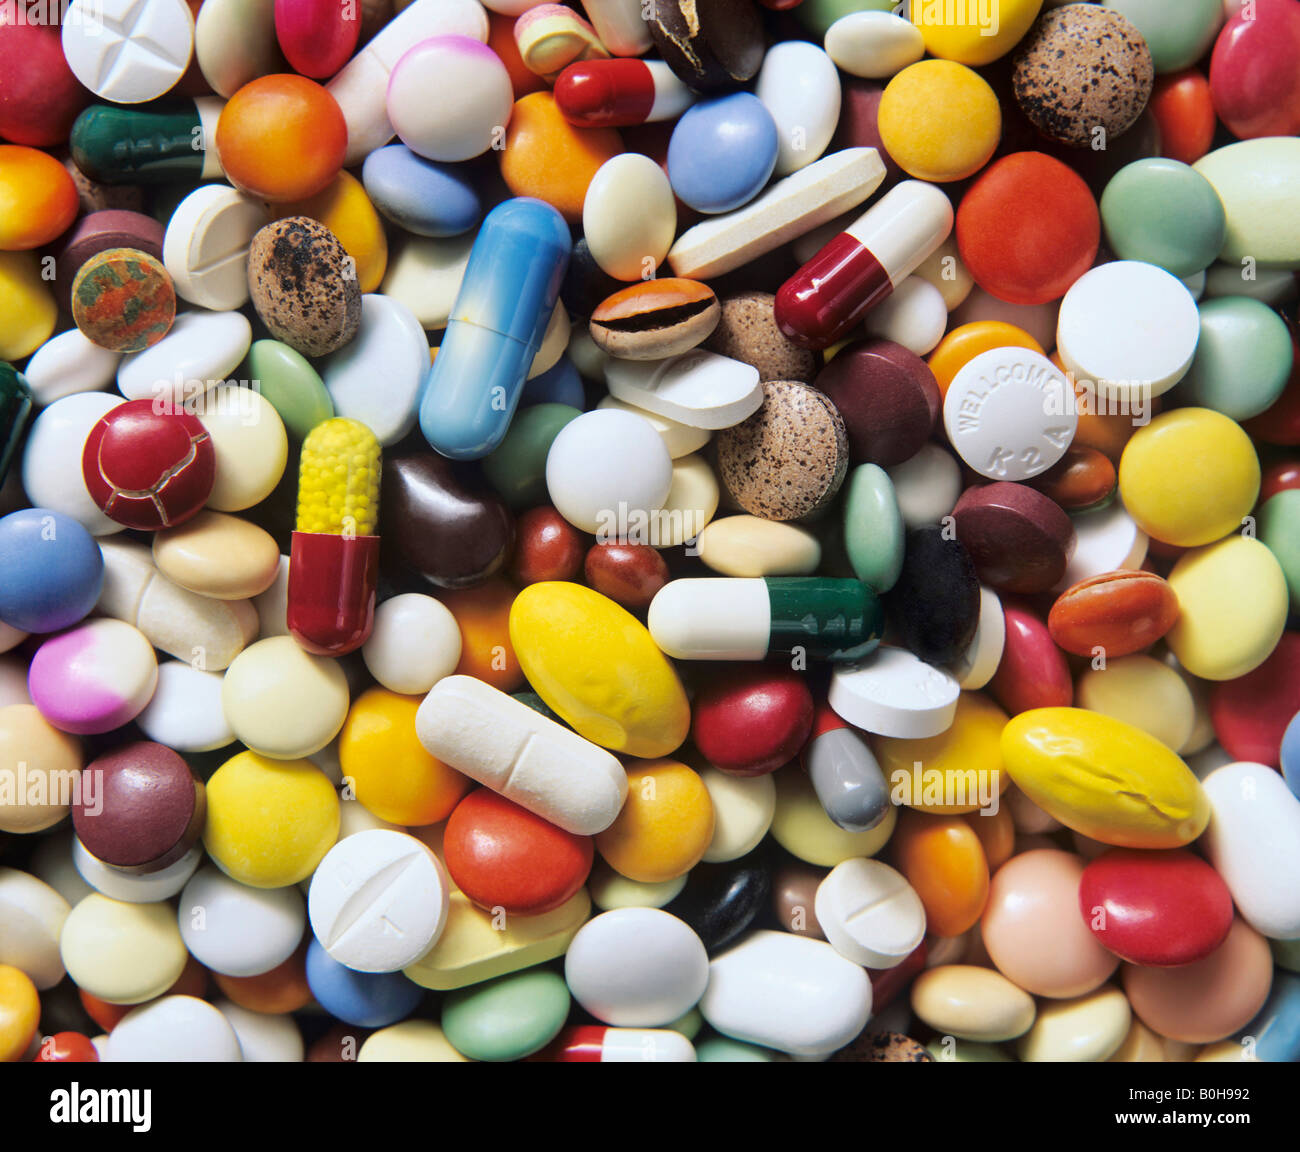 Pharmaceuticals, expired pills, cracked tablets, shrinkage and discolouration - Stock Image